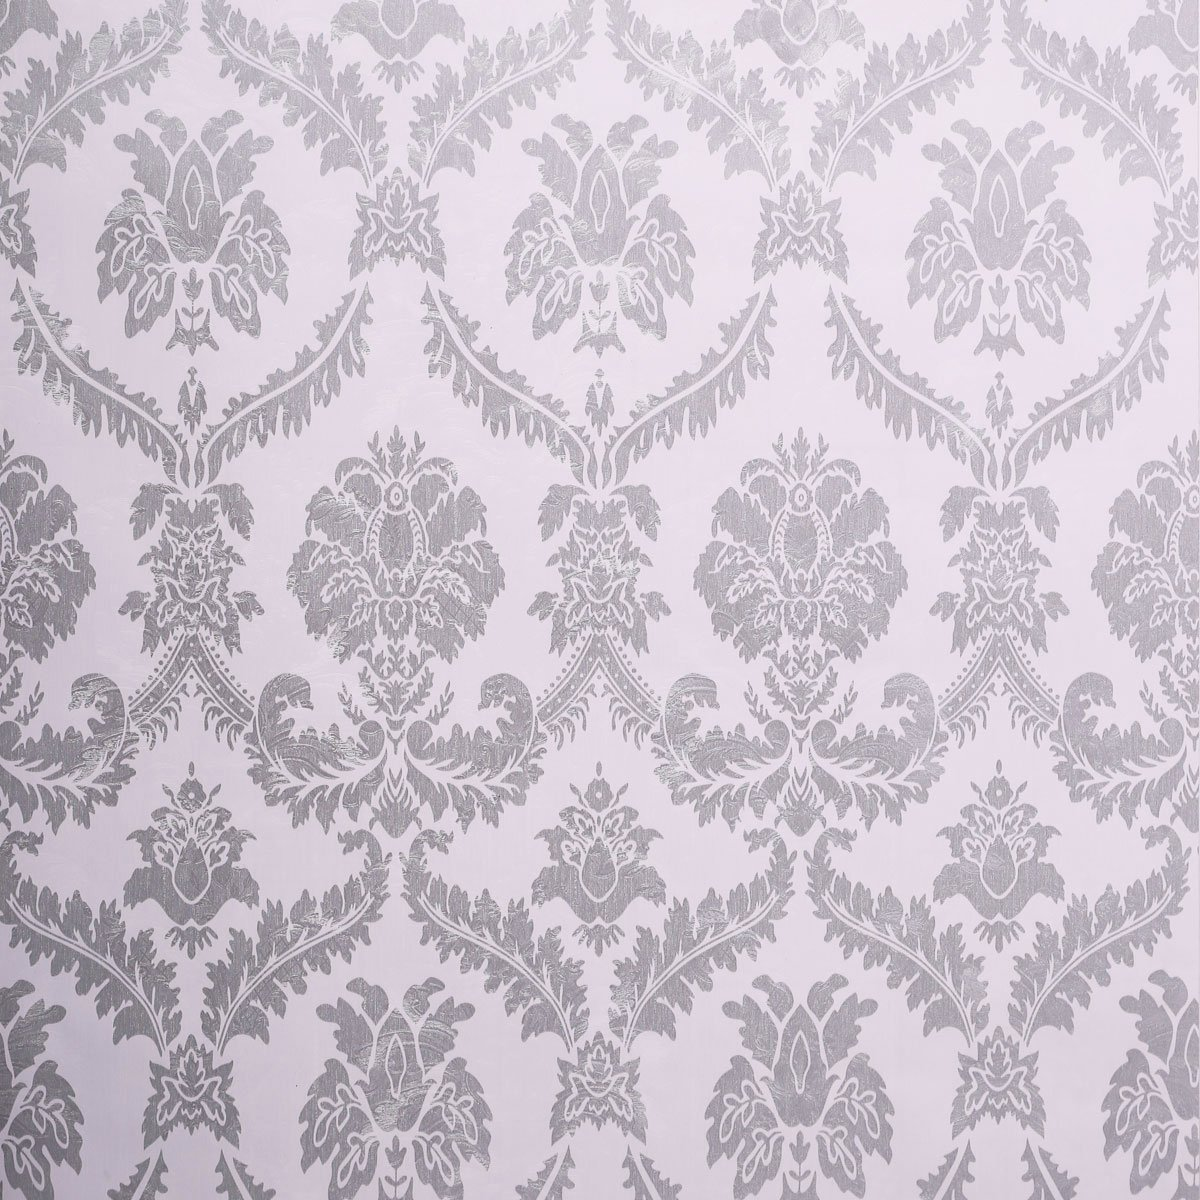 SICOHOME Wallpaper,11 Yard Damask Silver Peel Stick Wallpaper by SICOHOME